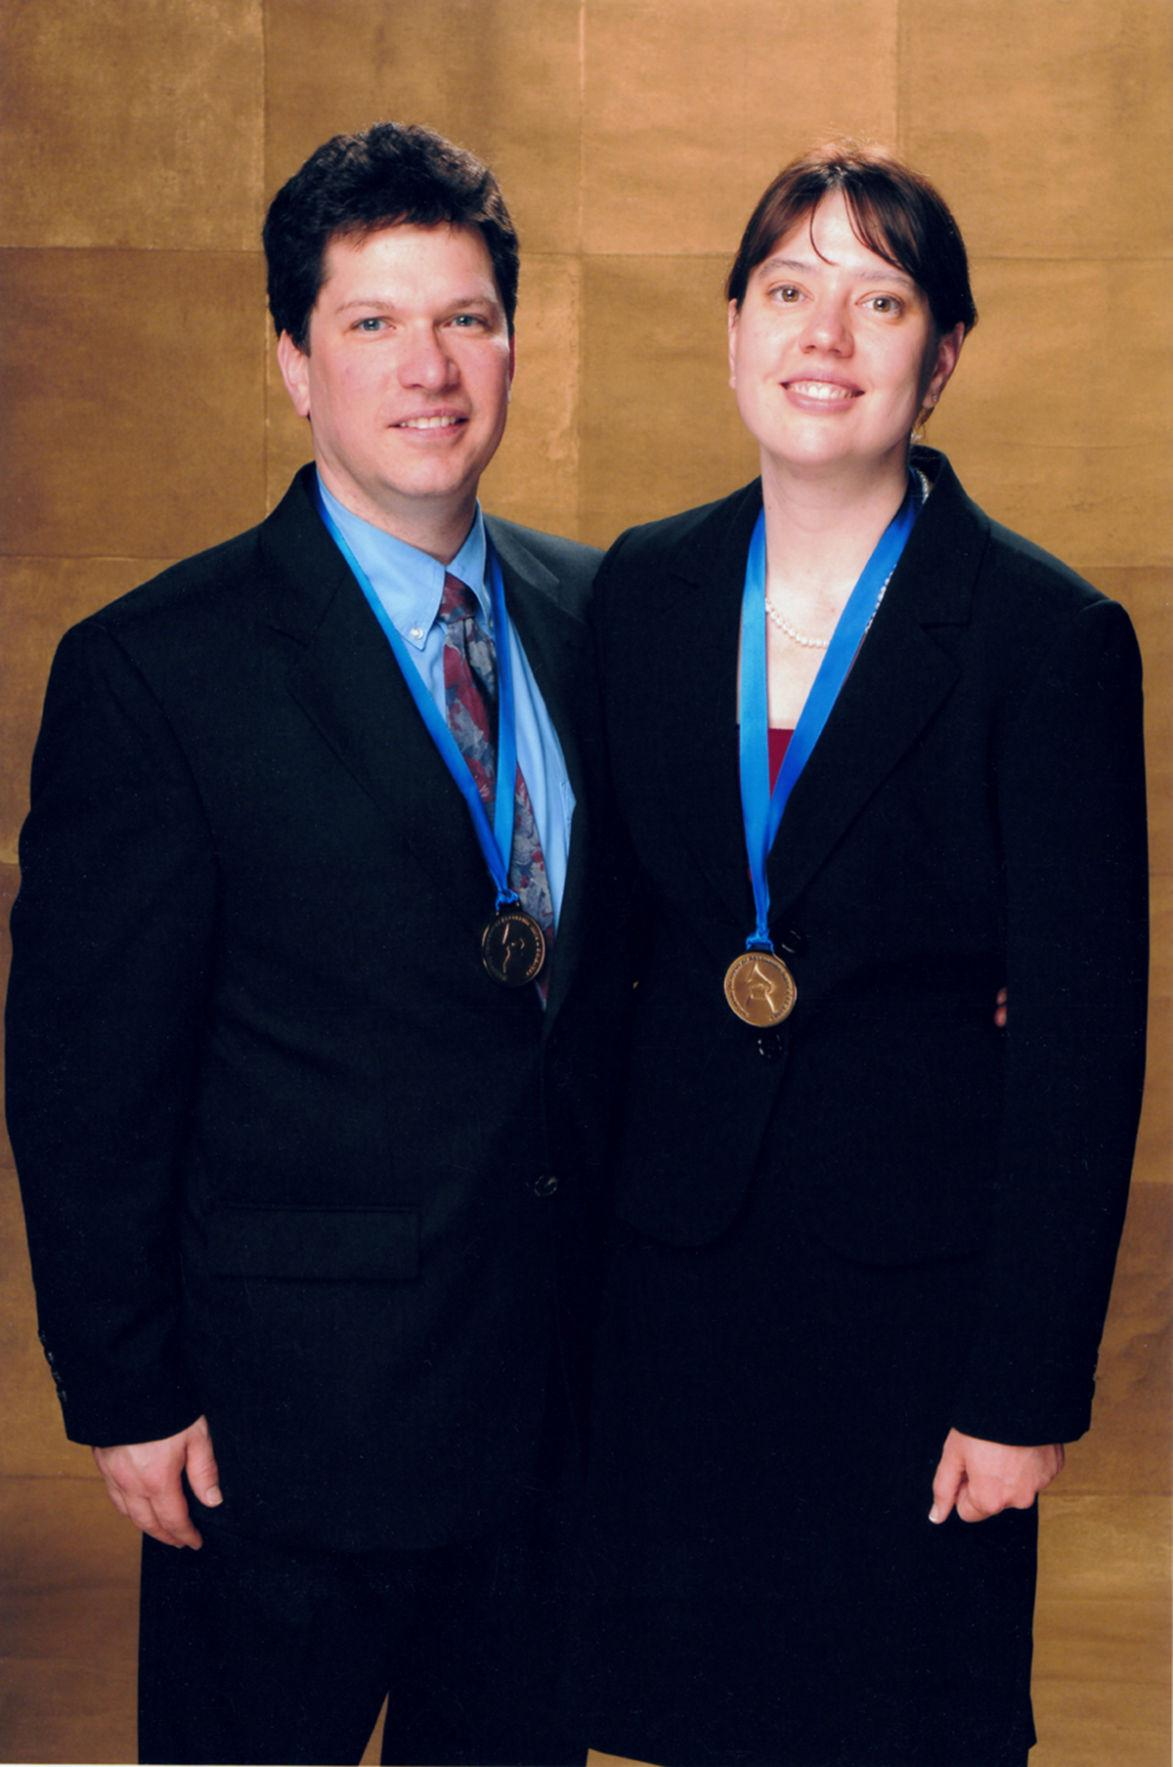 Meagan Hennessey and Richard Martin stand with their